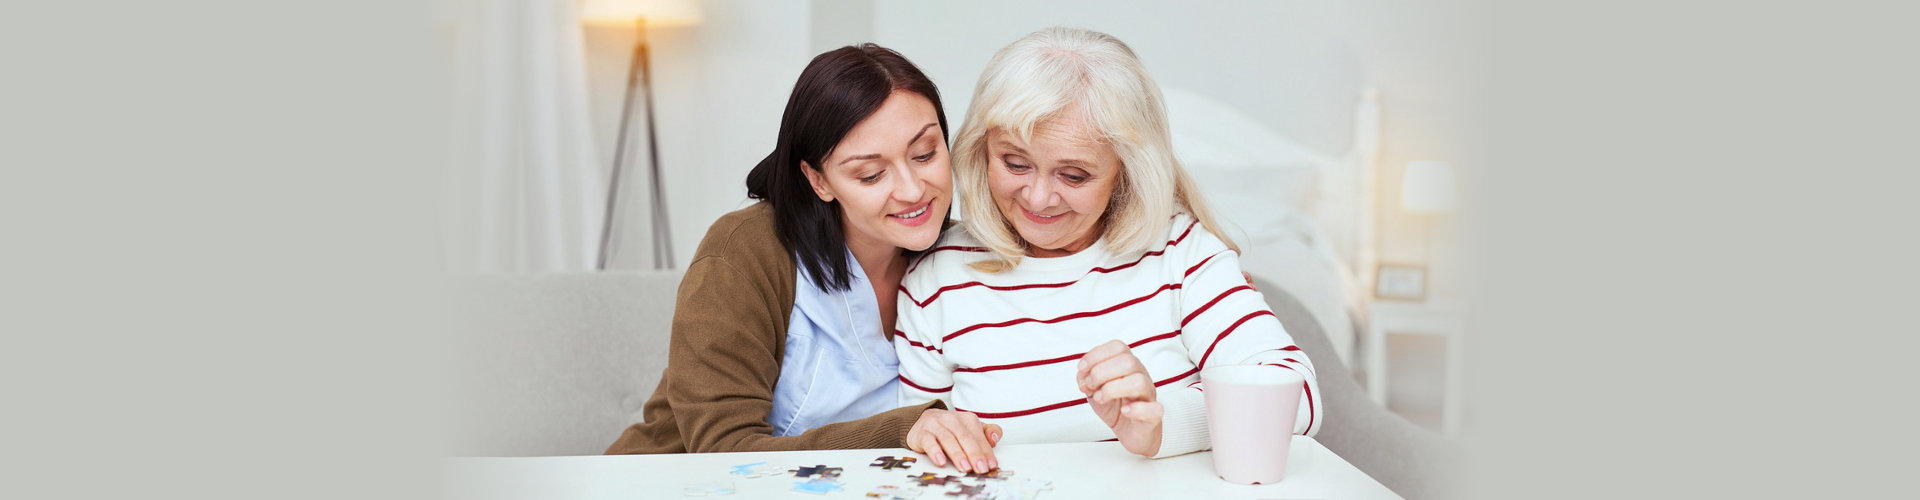 caregiver and senior woman playing with puzzles